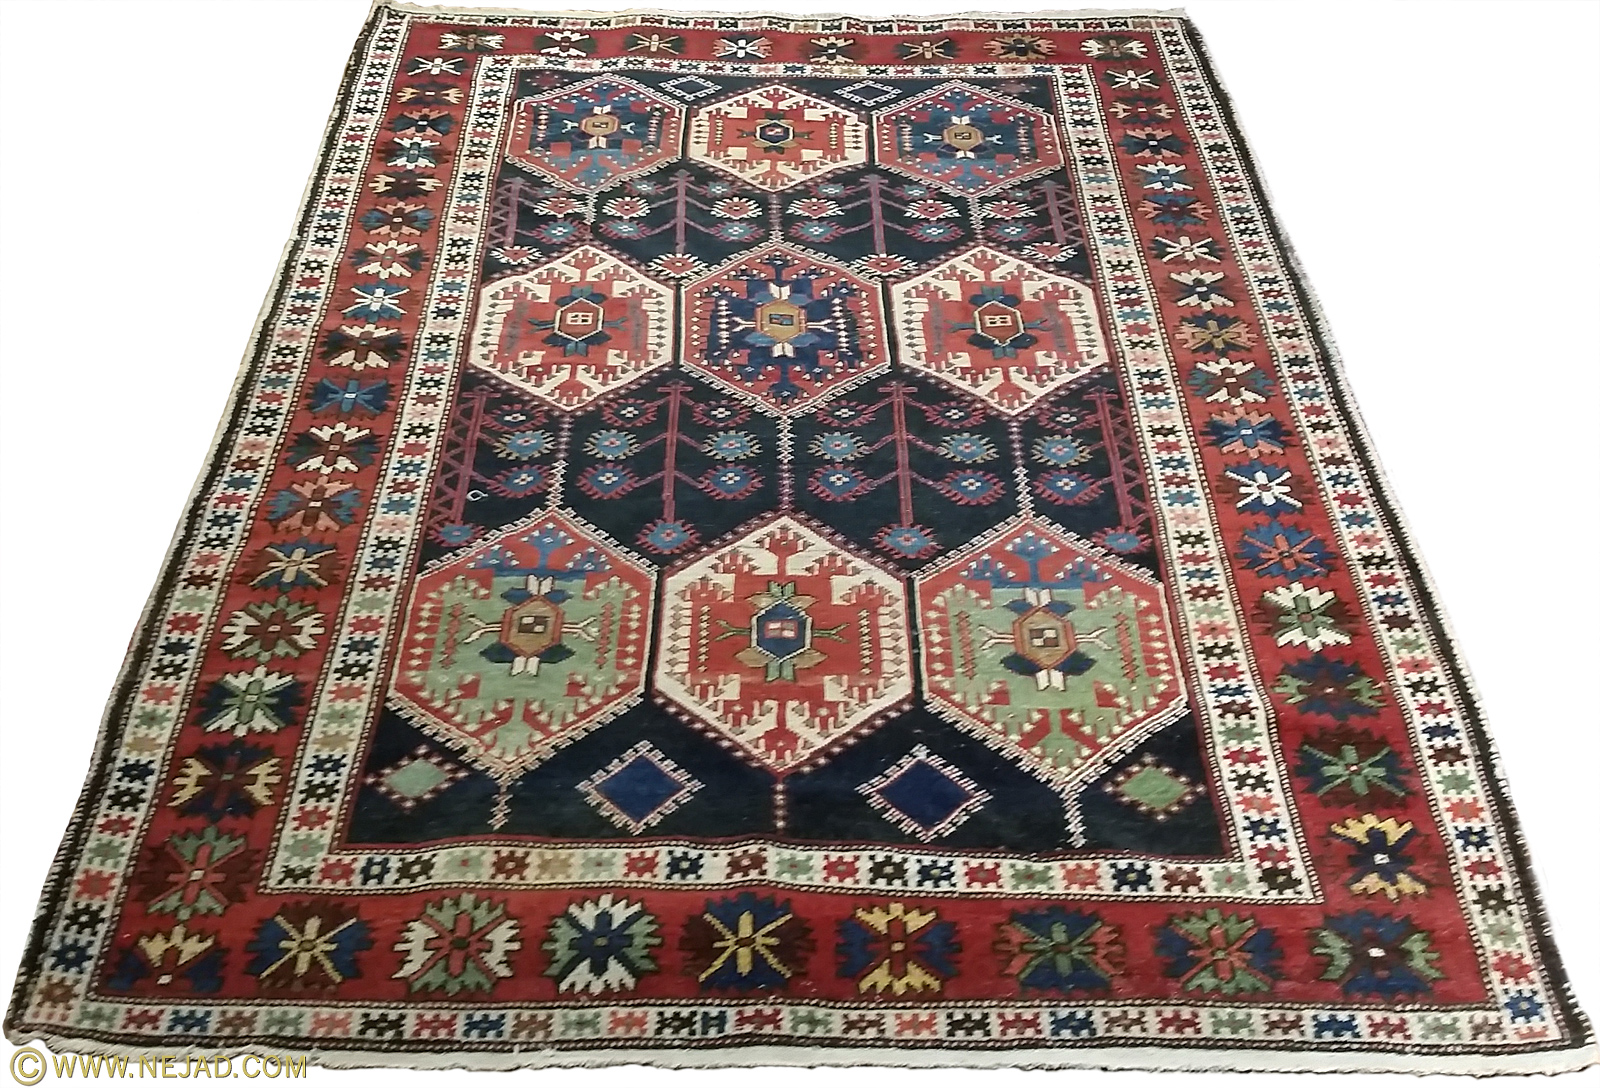 Antique Turkish Bergama Rug - Nejad Rugs